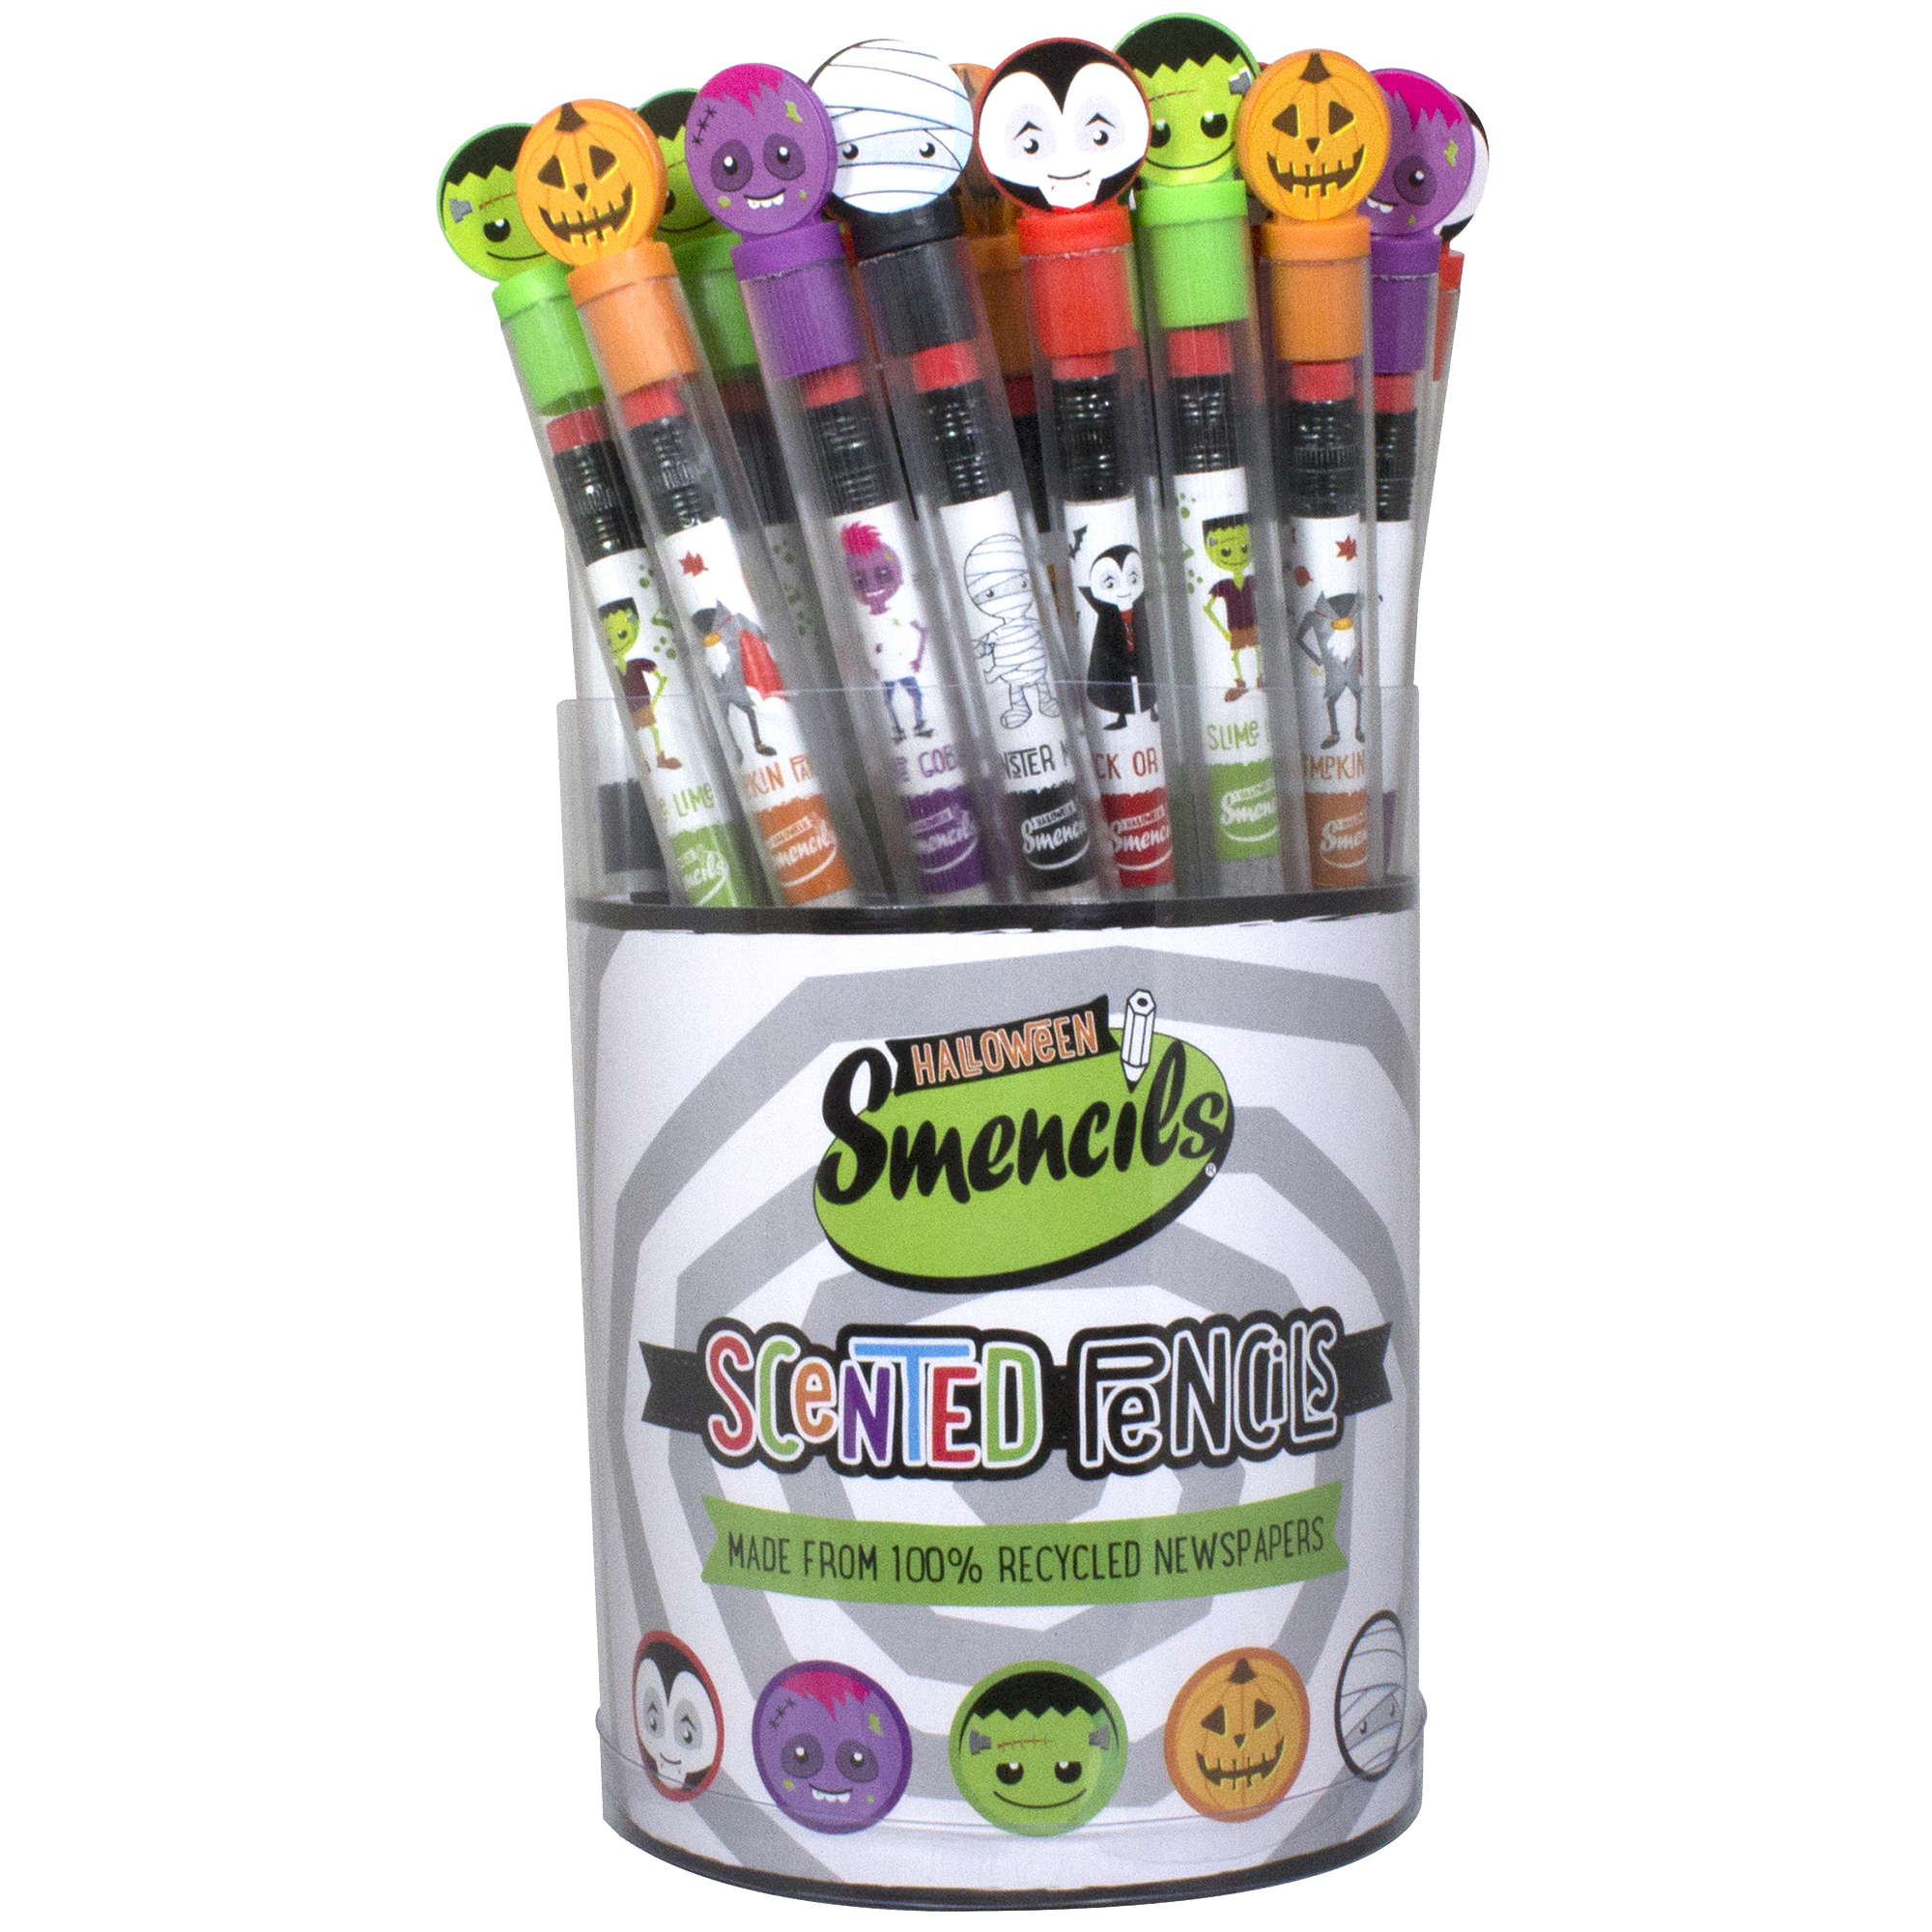 http://www.arizonafr.com/wp-content/uploads/2017/03/halloween_cylinder_new-150x150.png